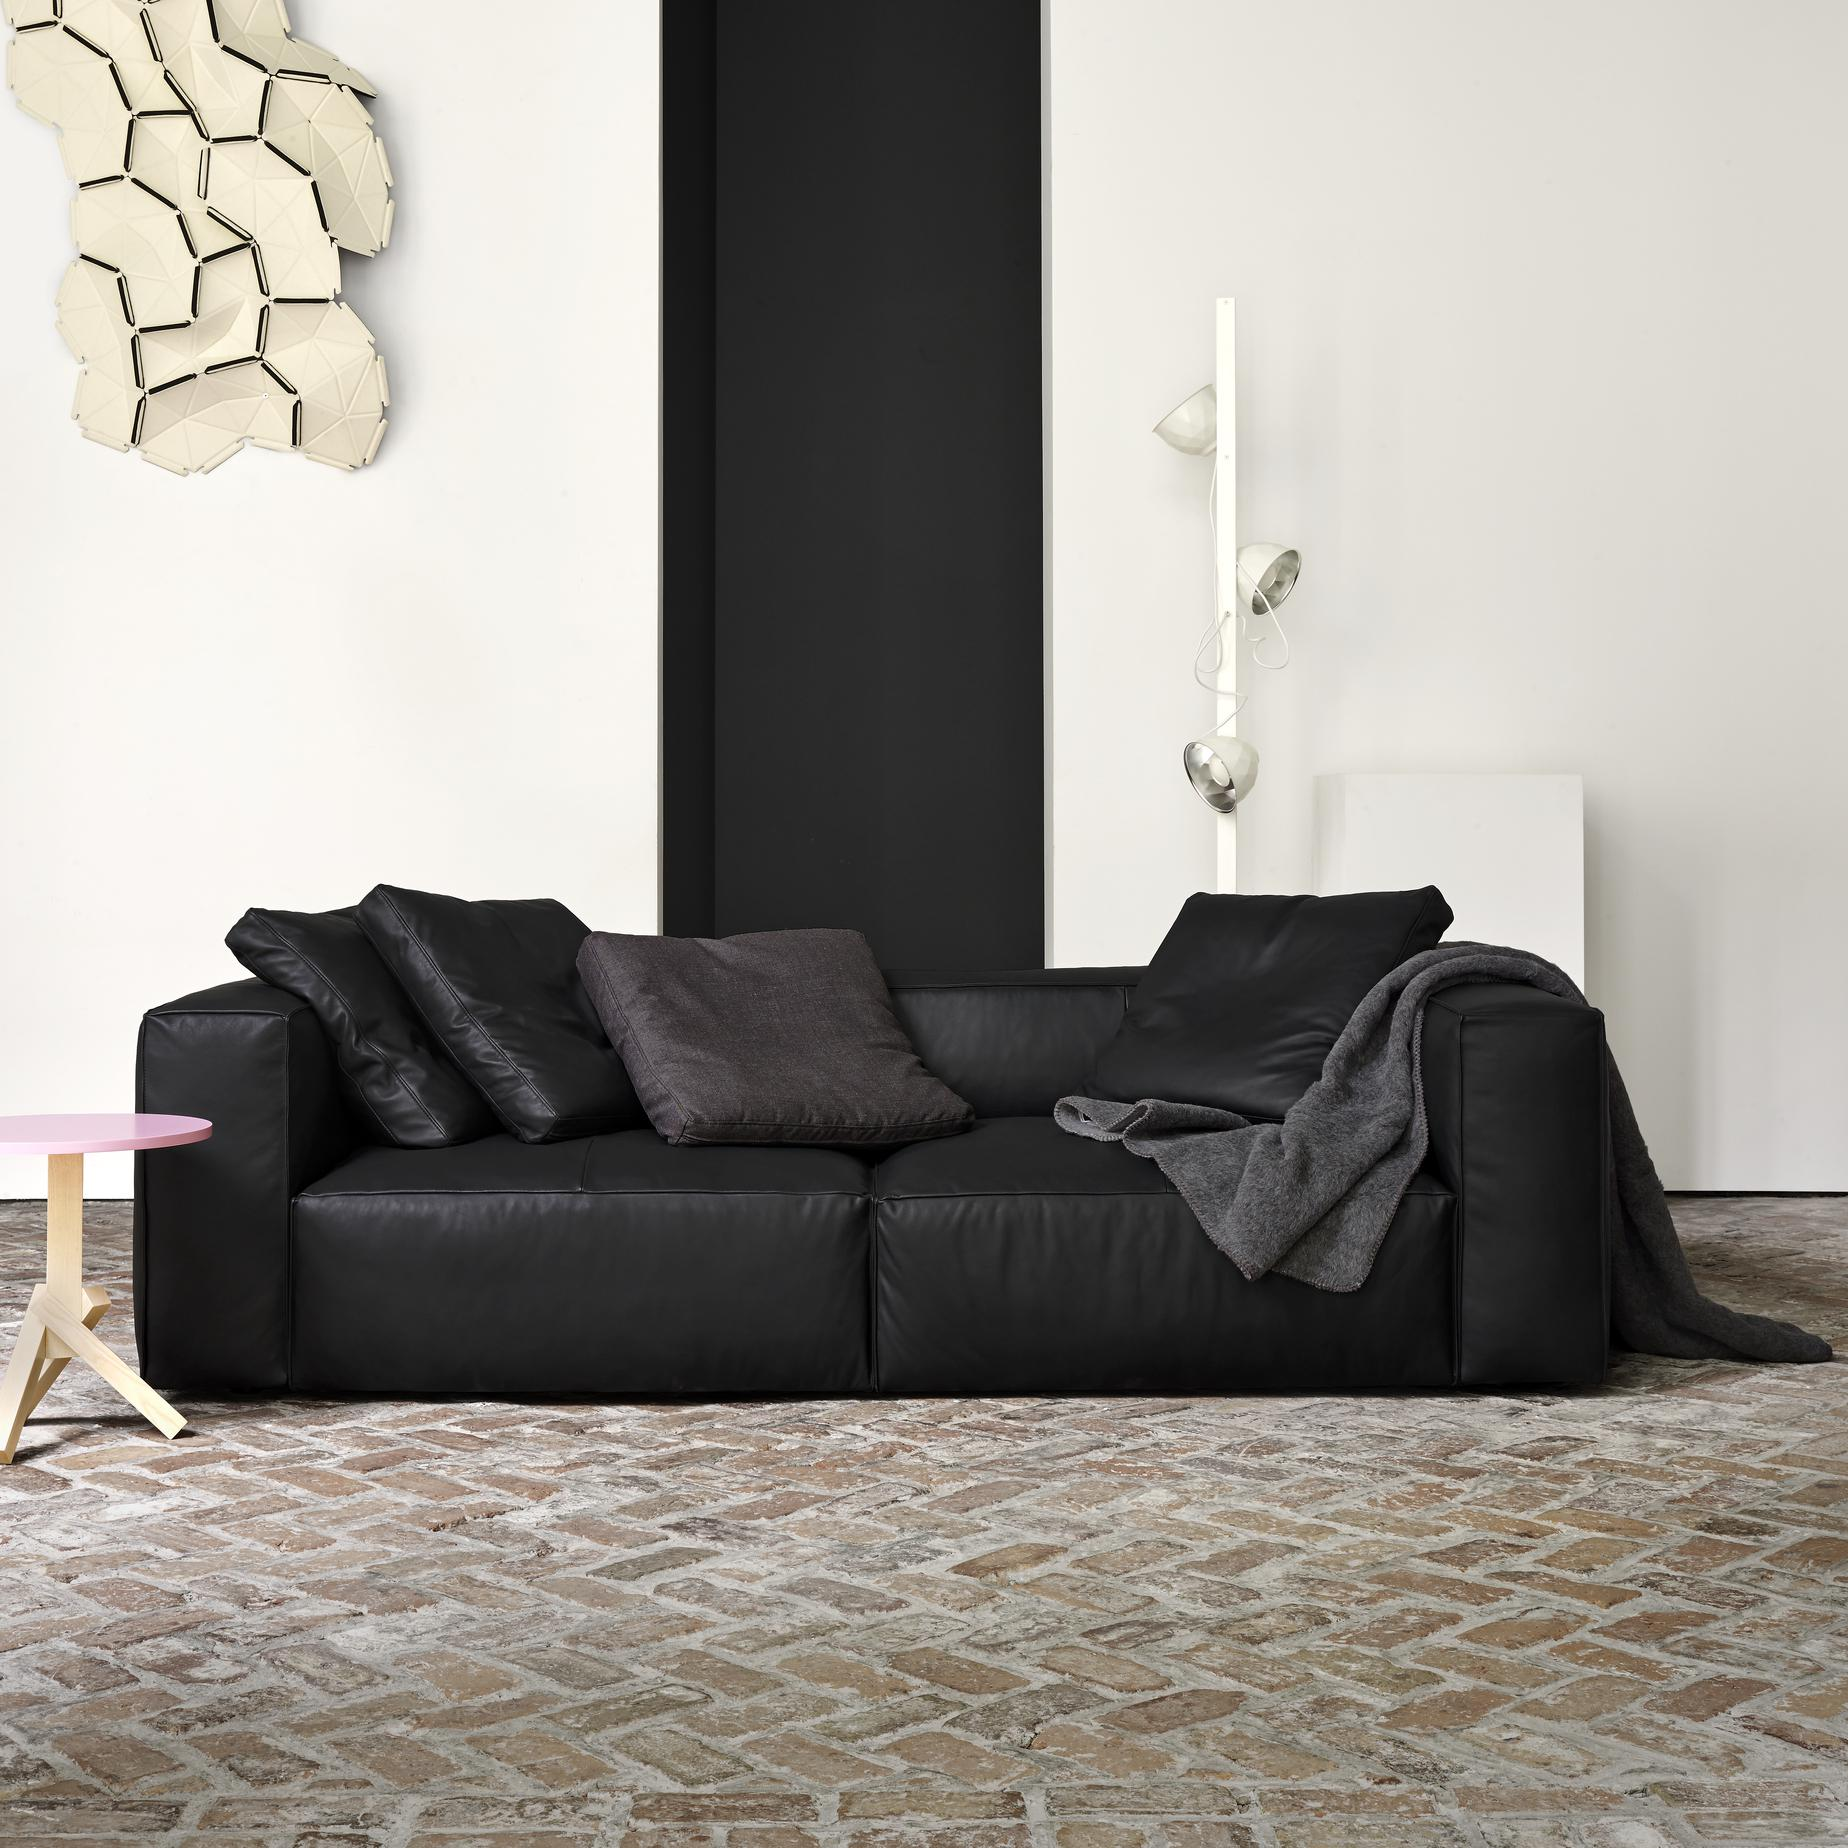 nils sofas designer didier gomez ligne roset. Black Bedroom Furniture Sets. Home Design Ideas